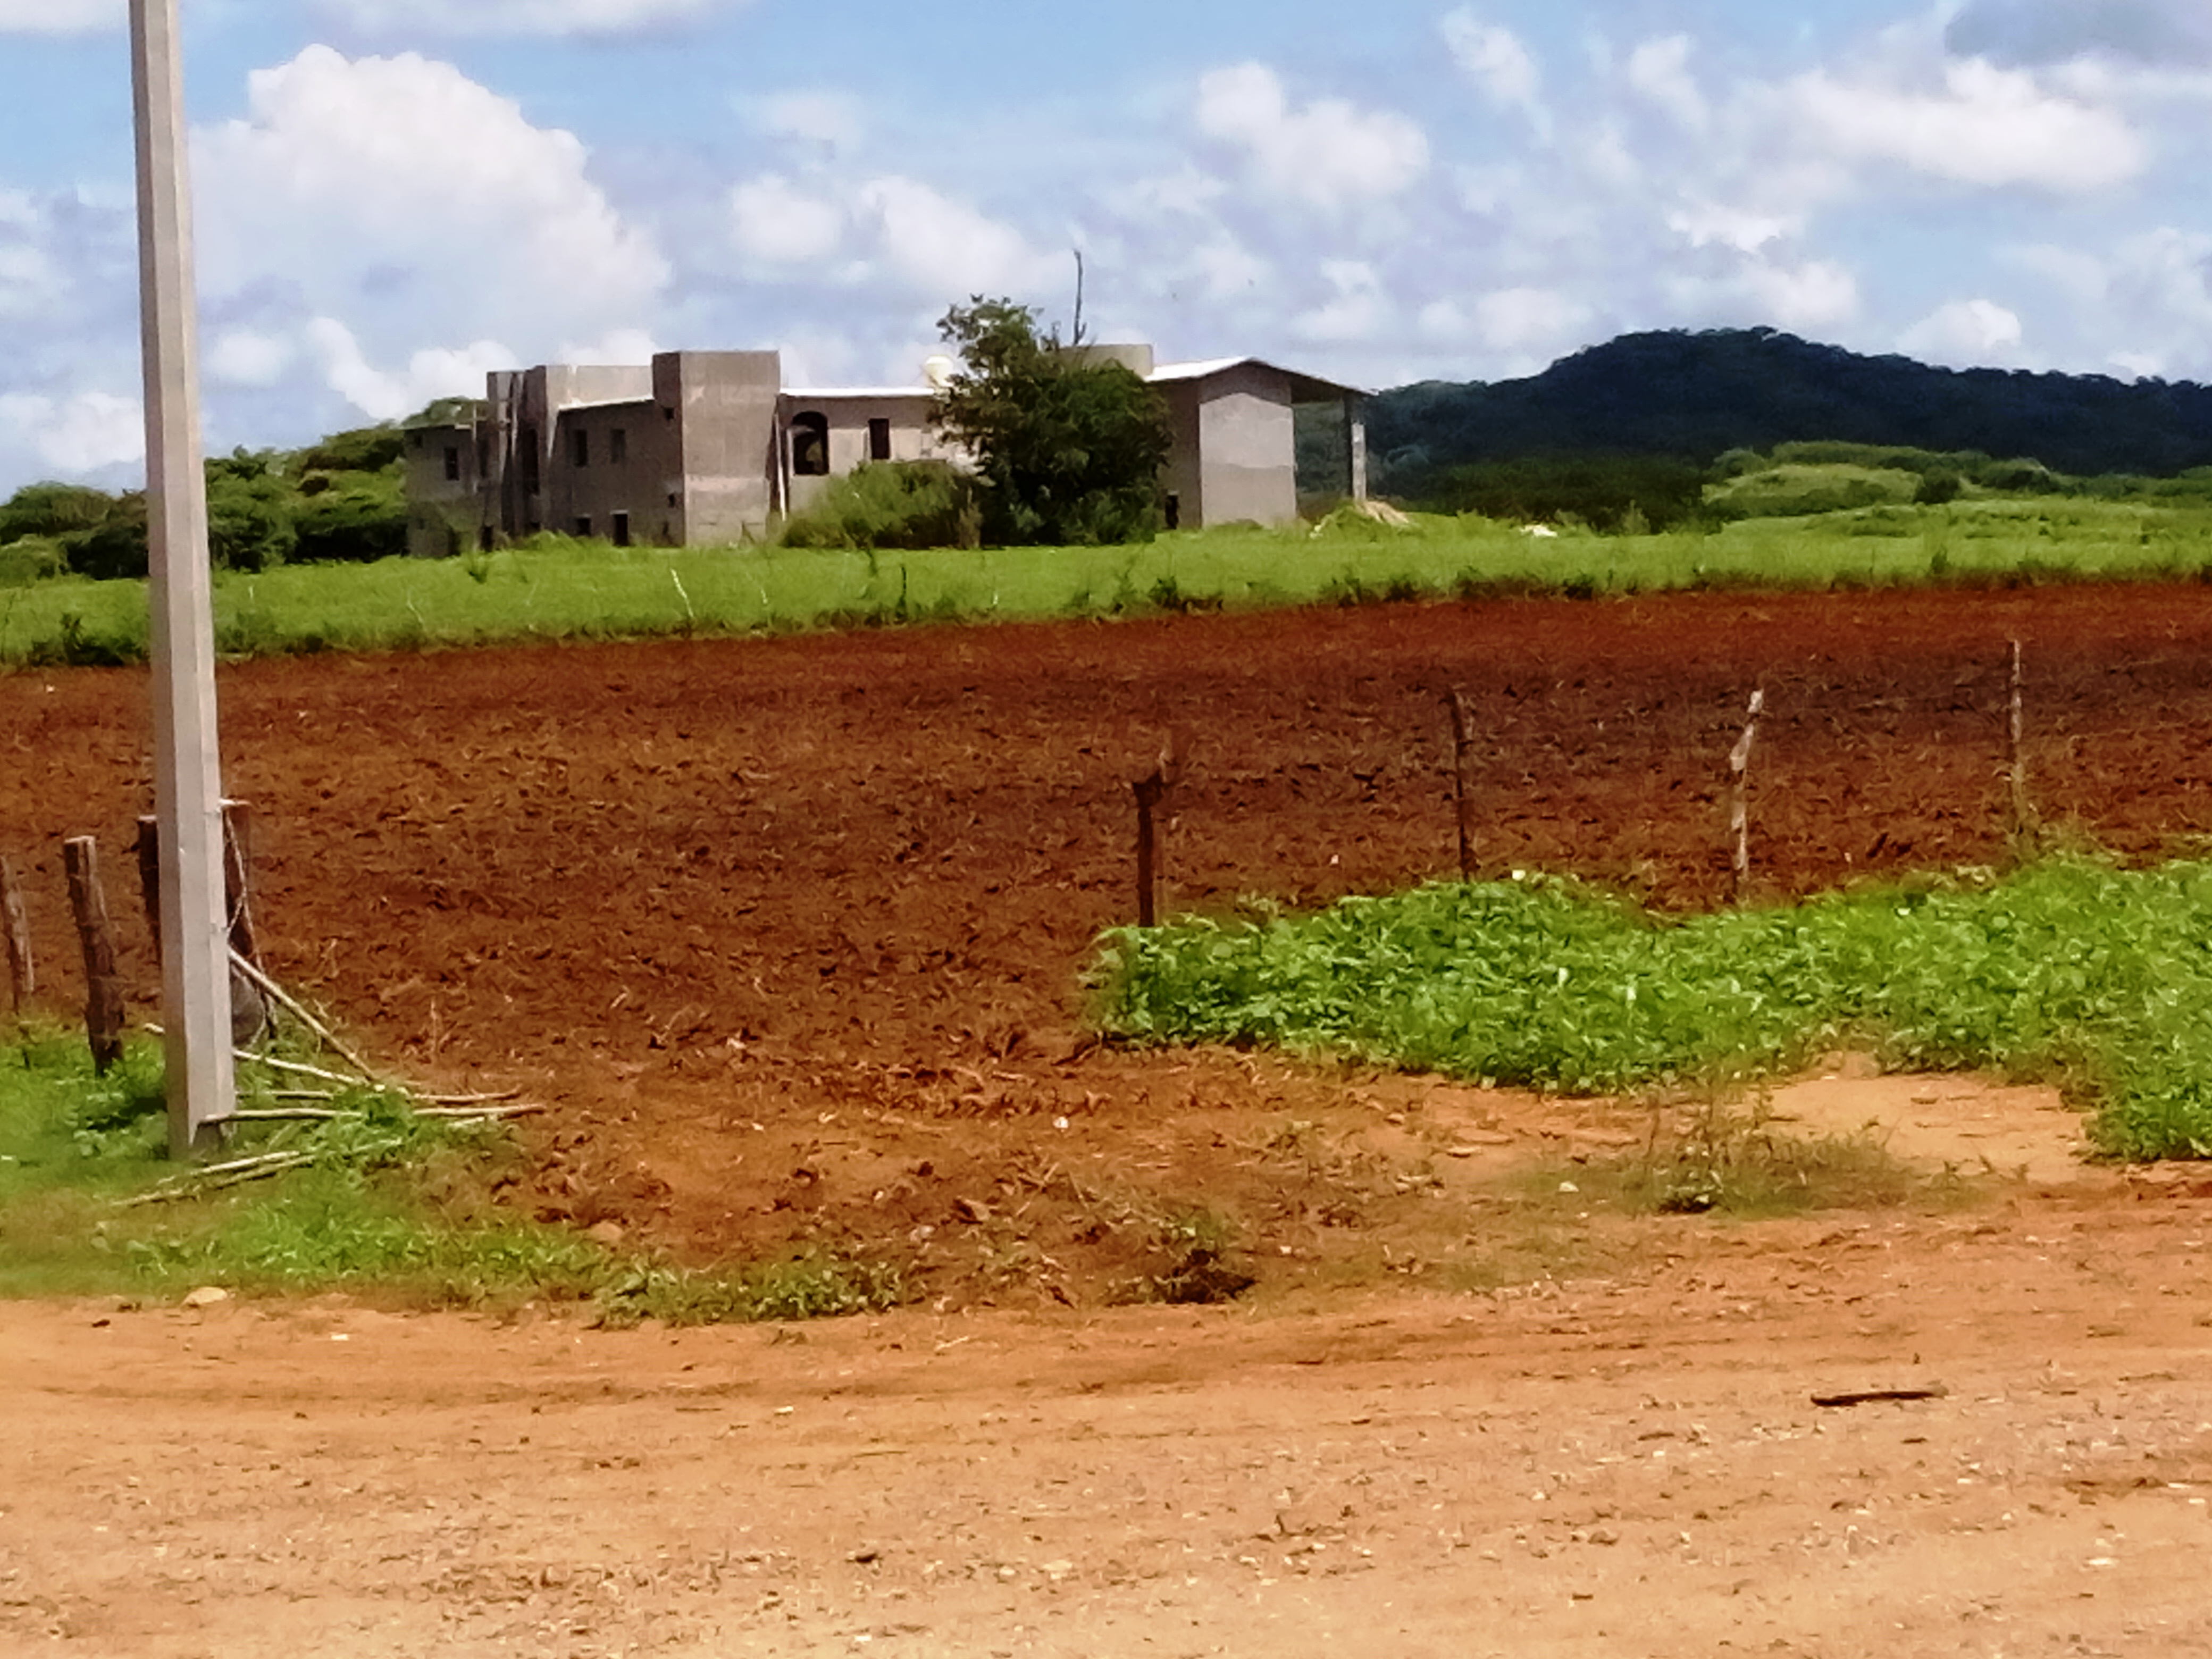 10 bedroom Hacienda + 6 hectares in the country